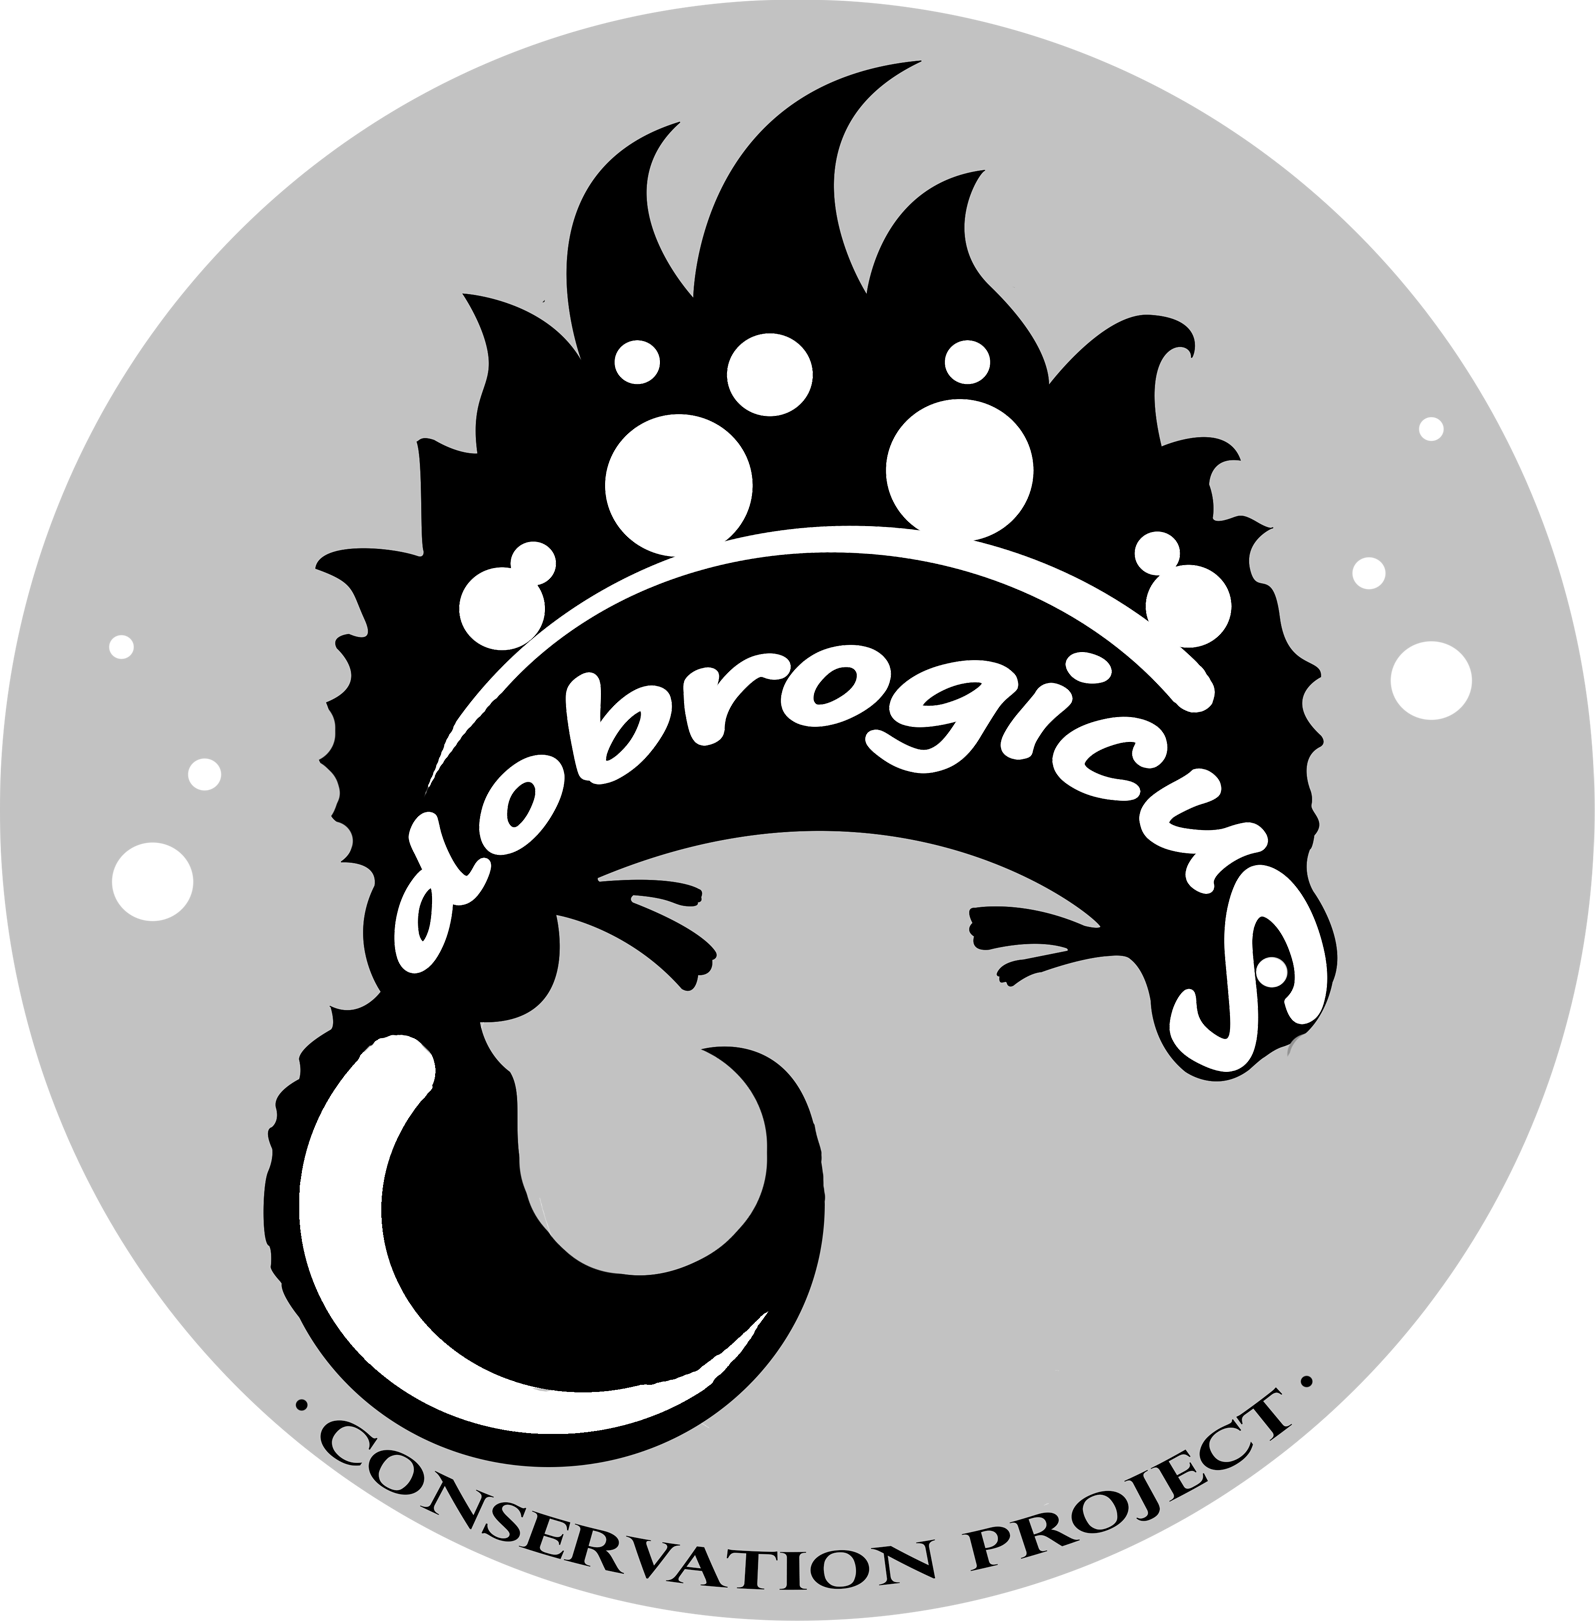 logo projekta / logo of the project